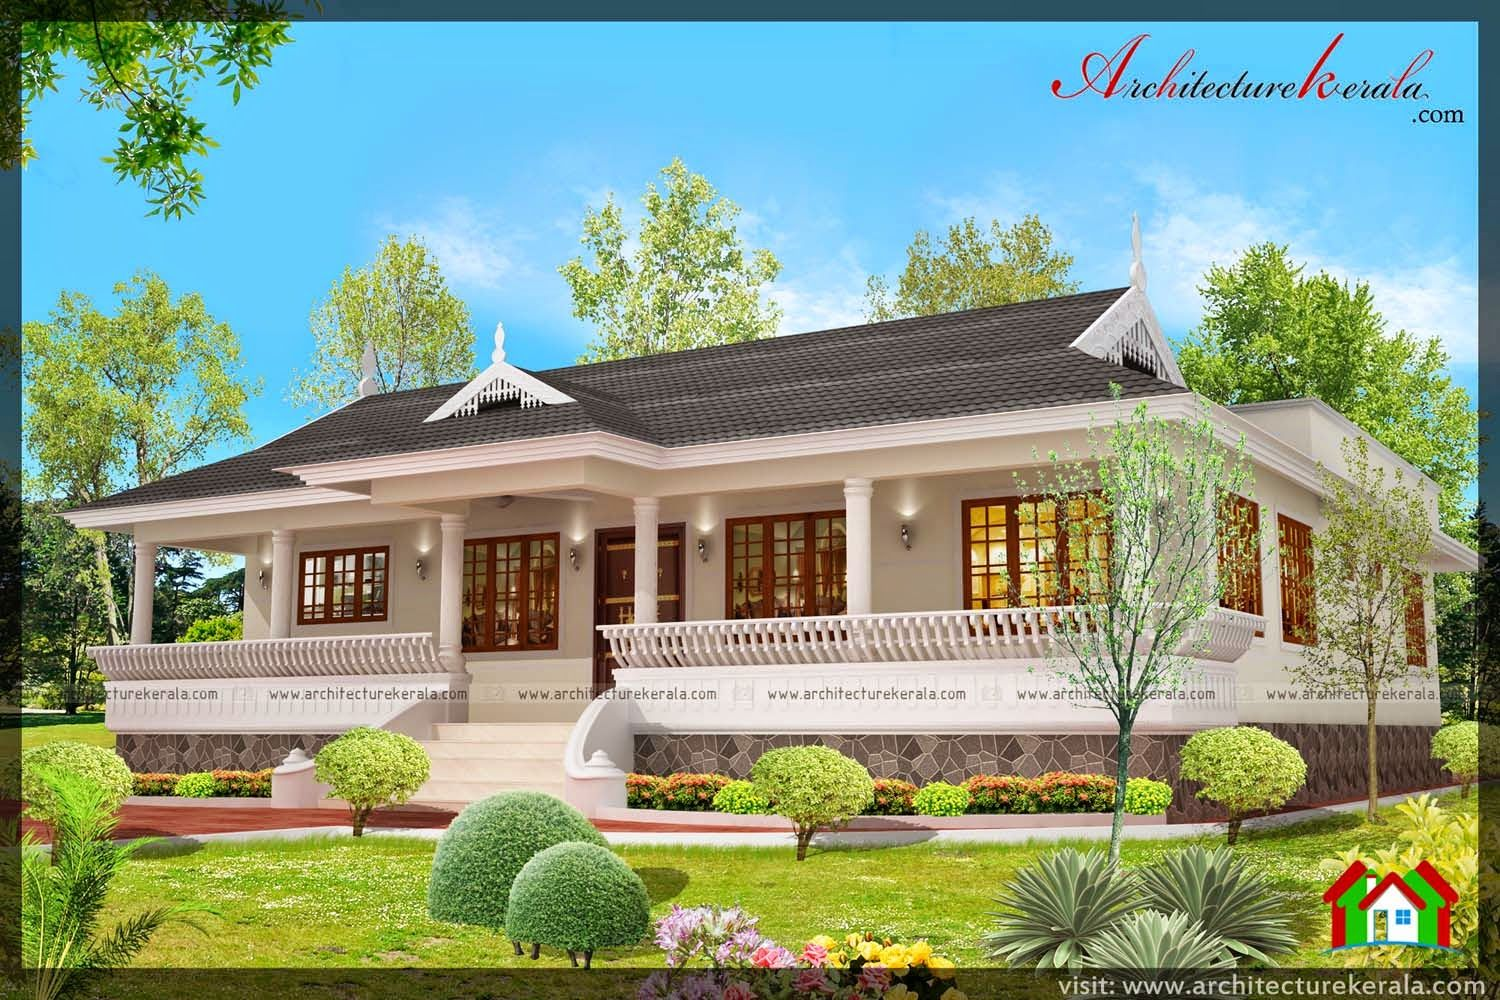 Delightful 3 Bedroom Tradition Kerala Home With Nadumuttam Part - 13: Nalukettu Style Kerala House With Nadumuttam - ARCHITECTURE KERALA